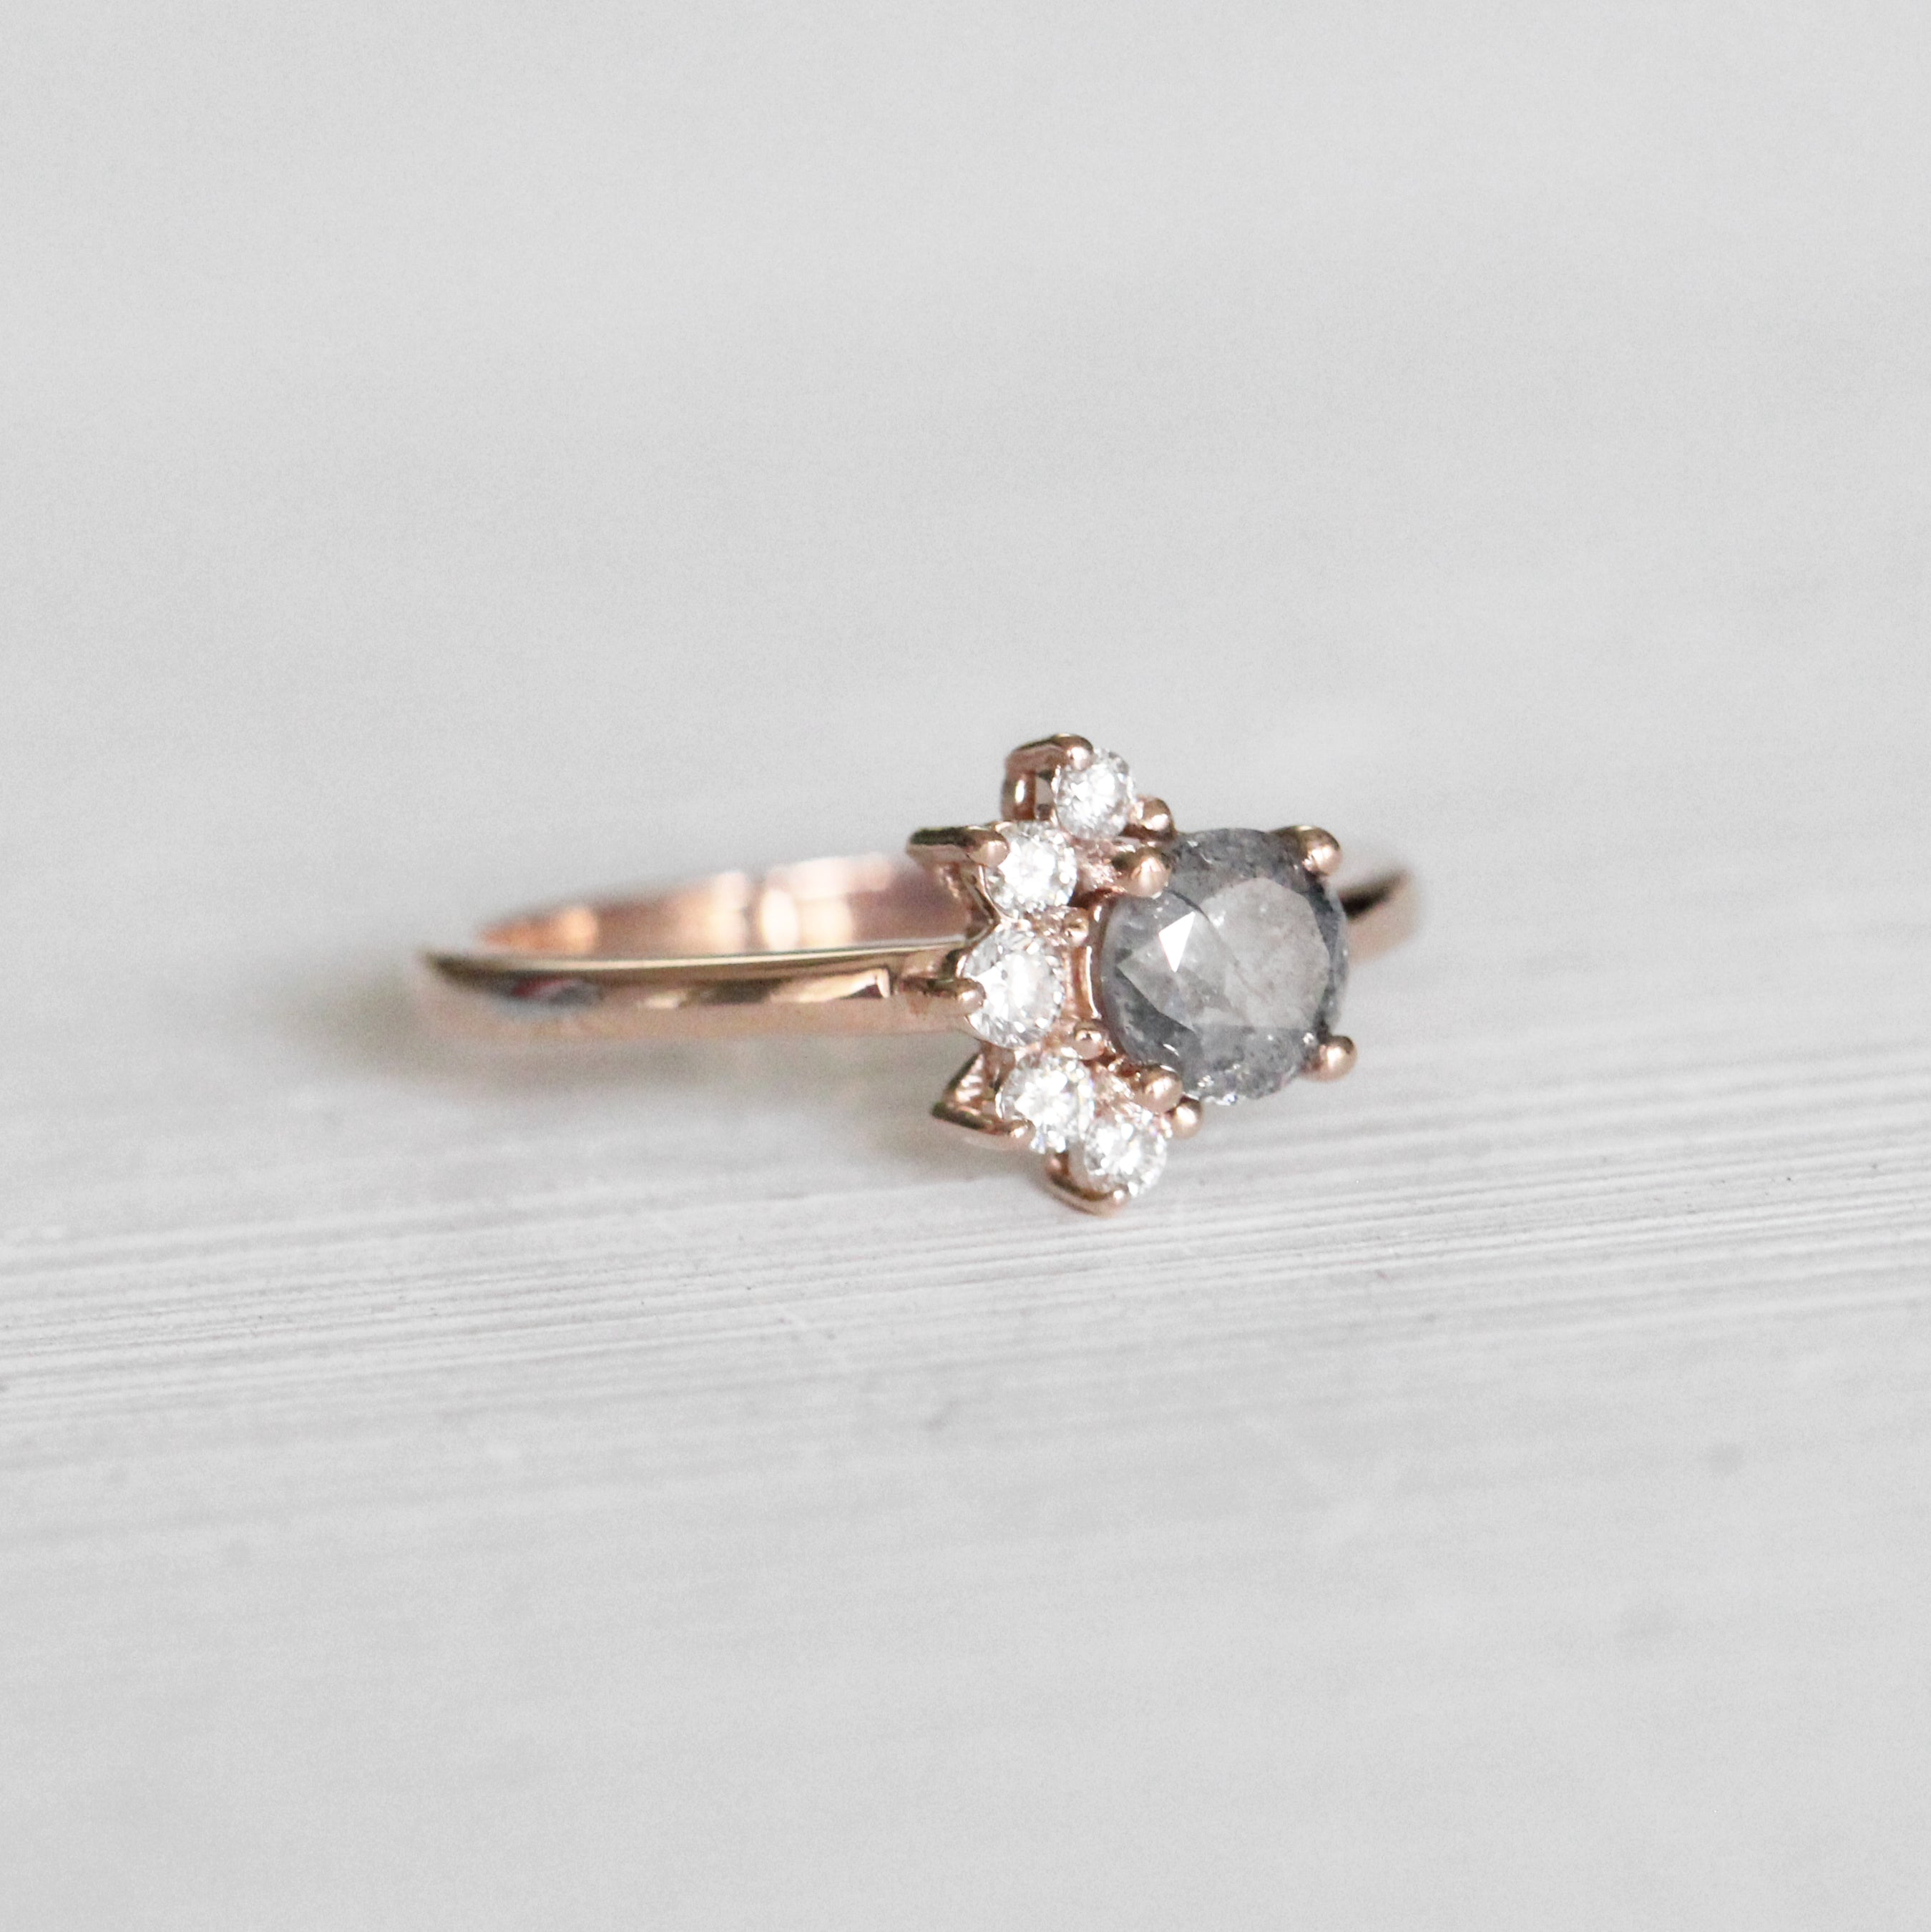 Drew Ring with a .68ct Celestial Diamond® in 10k Rose Gold - Ready to Size and Ship